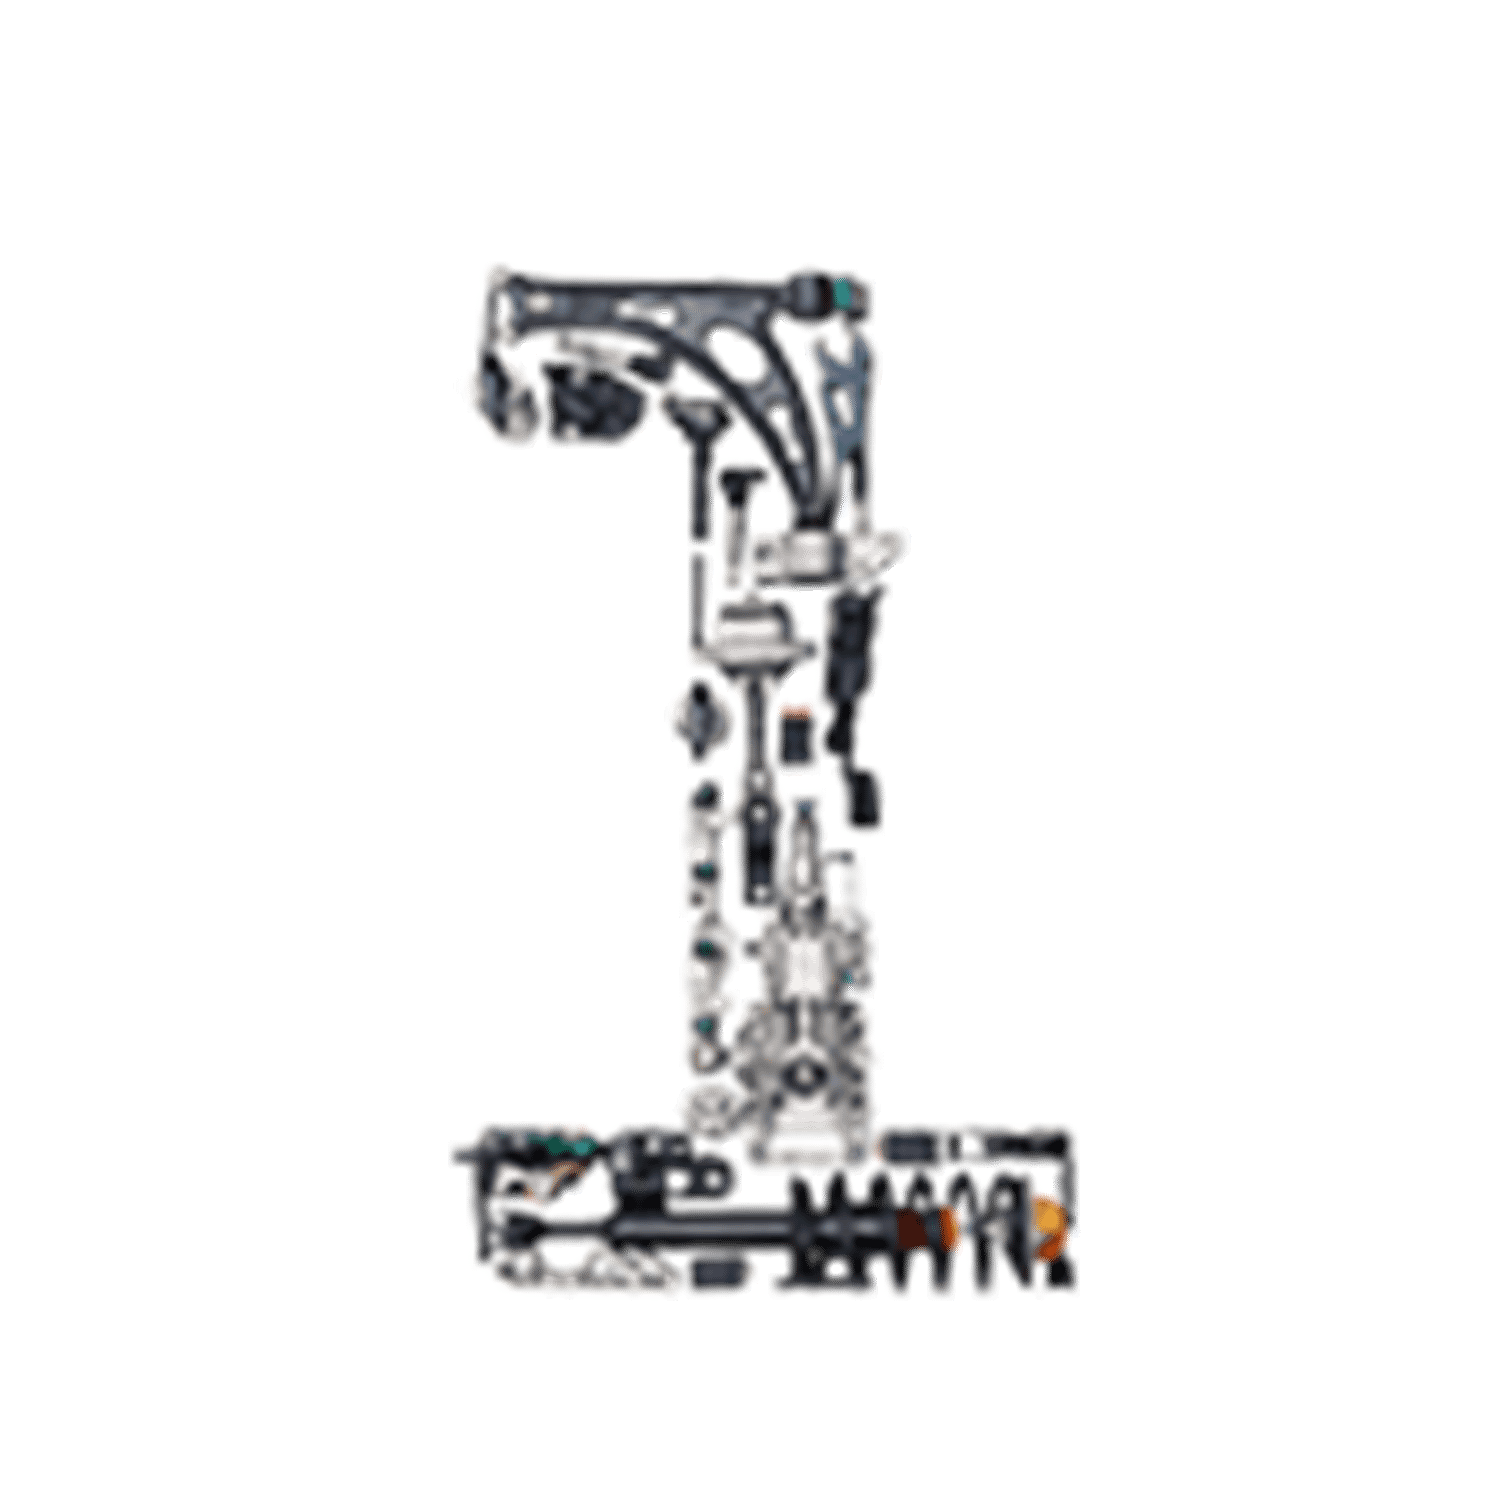 Number 1 made from car parts